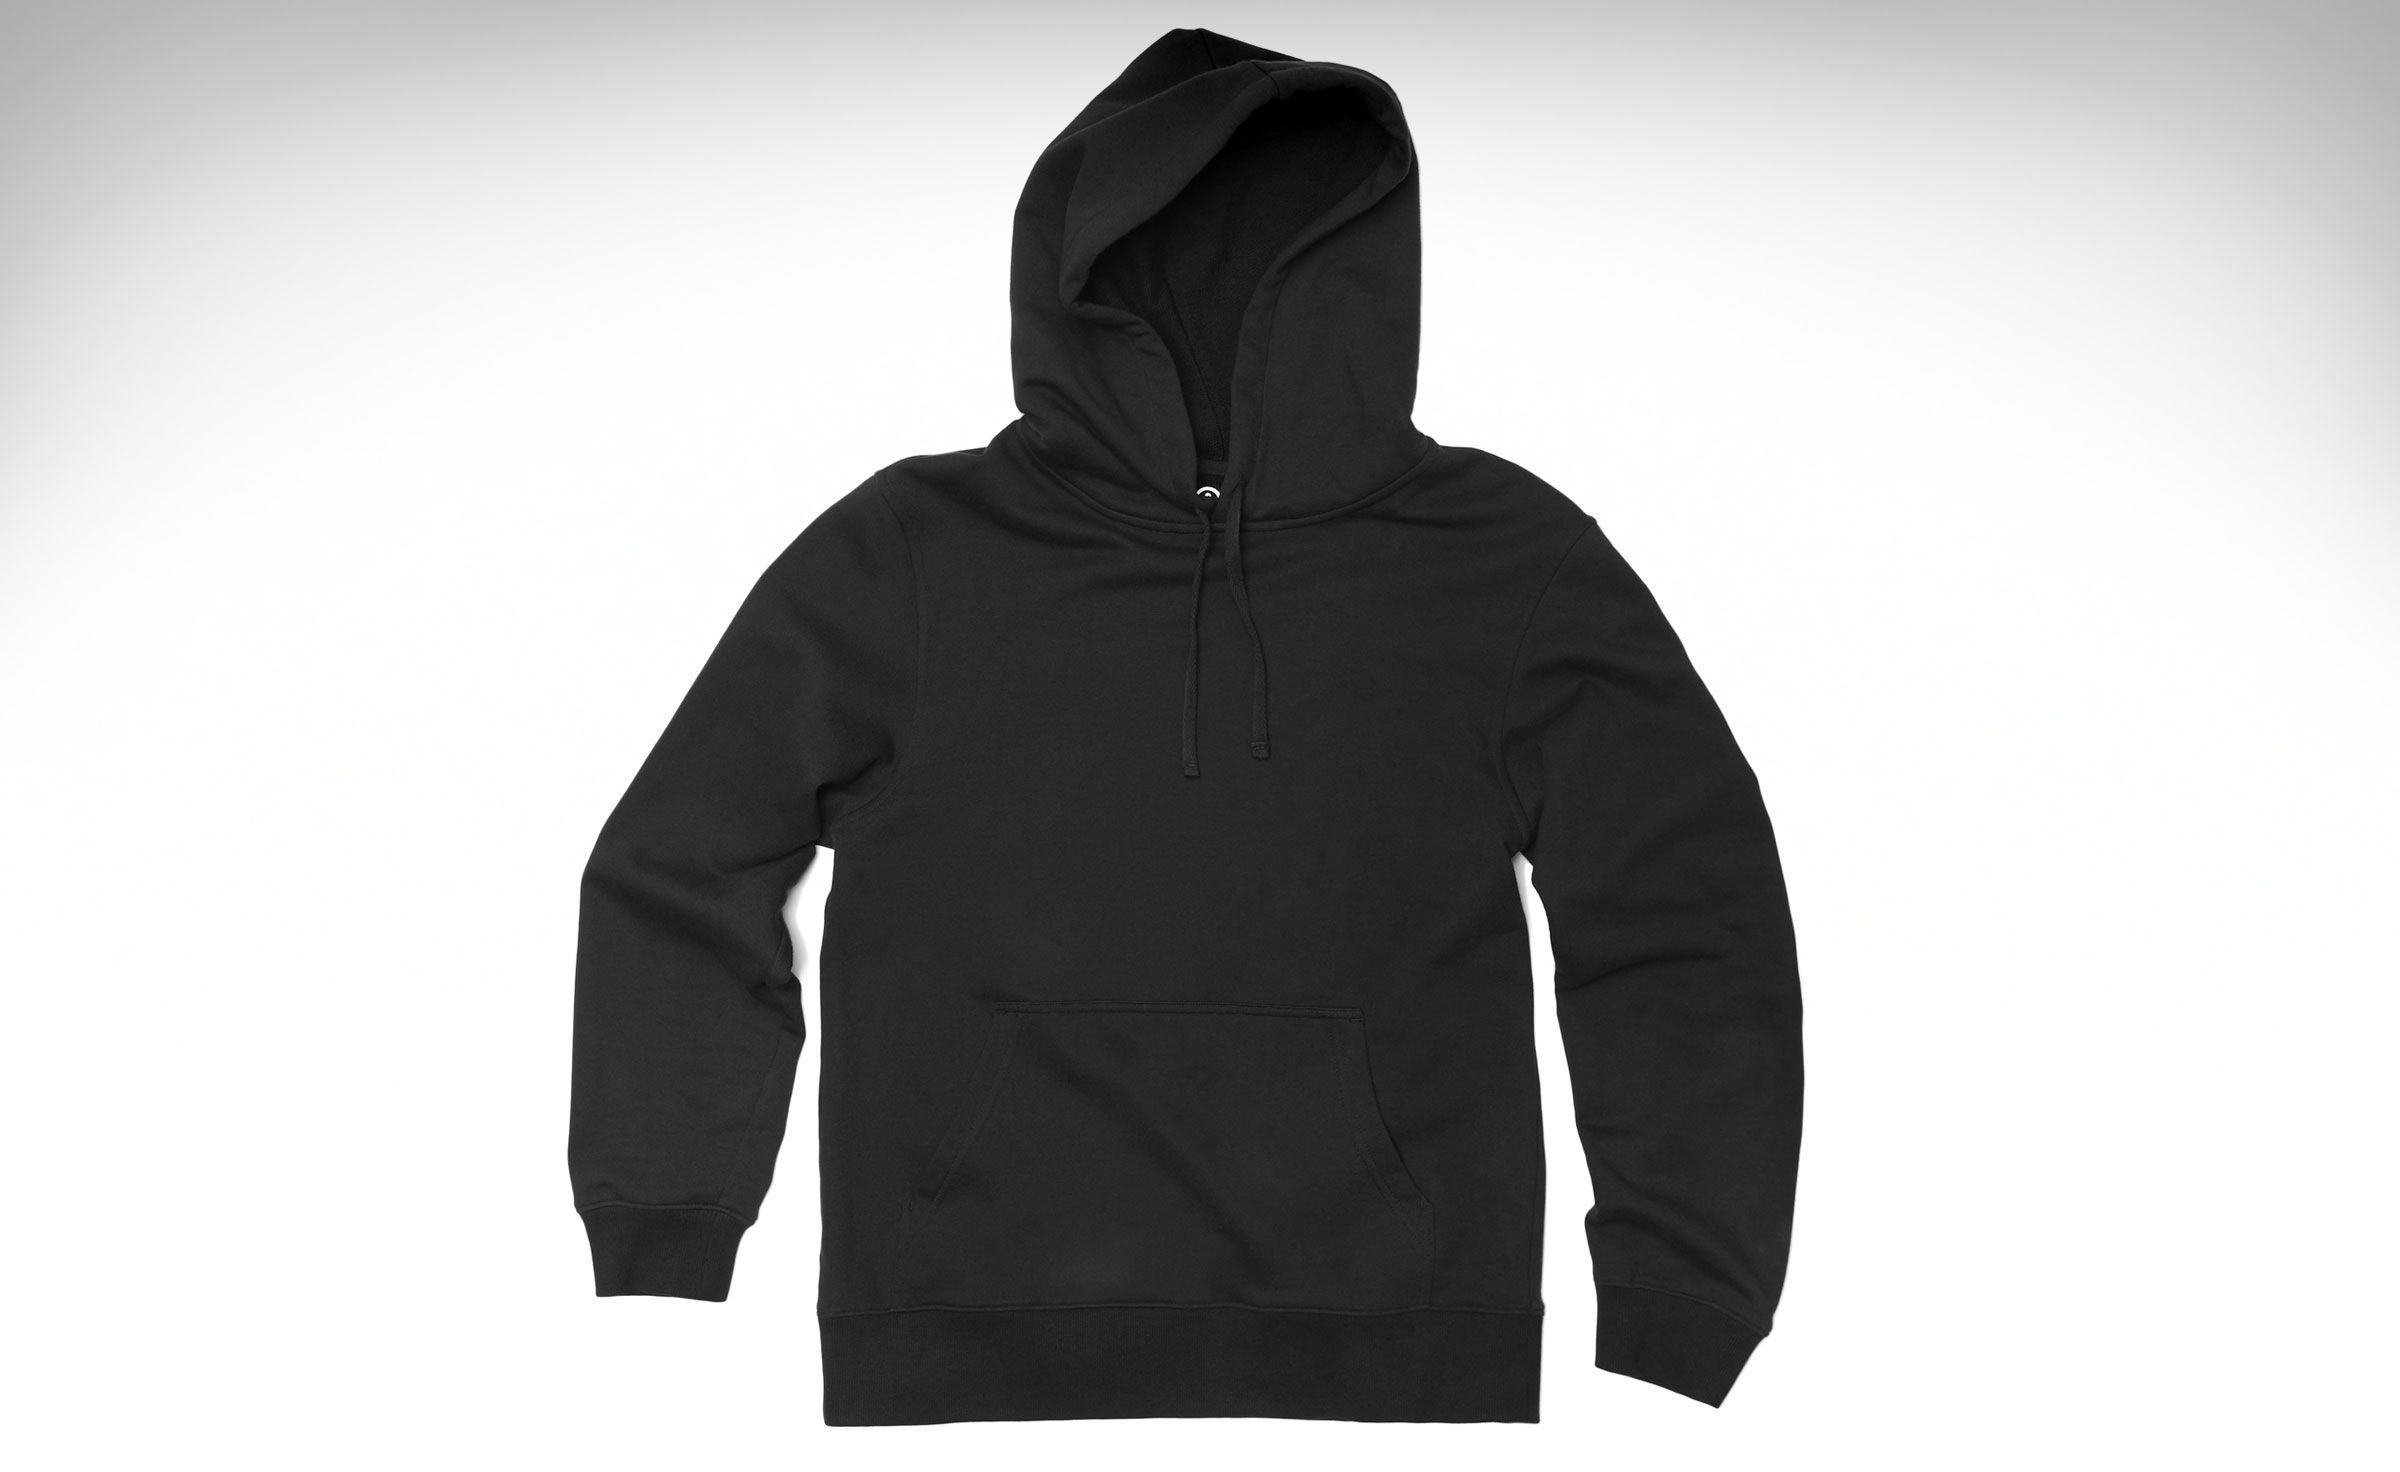 Outlier Co Weight Pullover Hoodie Gear Hungry Hoodies Hoodie Mockup Free Pullover Hoodie